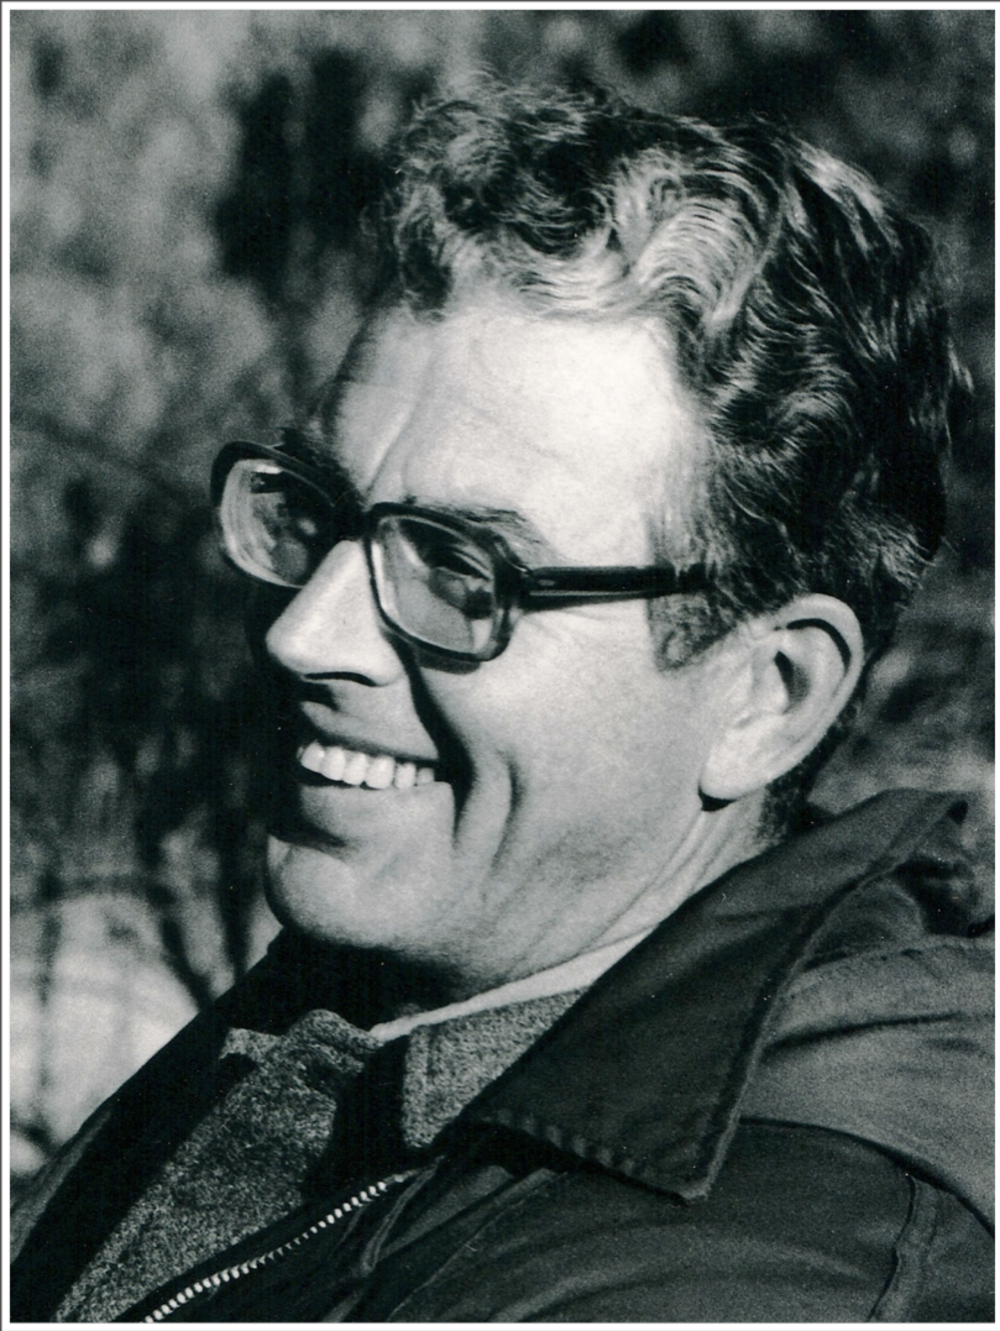 Henning Pontoppidan, father of Lisa Pontoppidan, Director of Personal Story Films